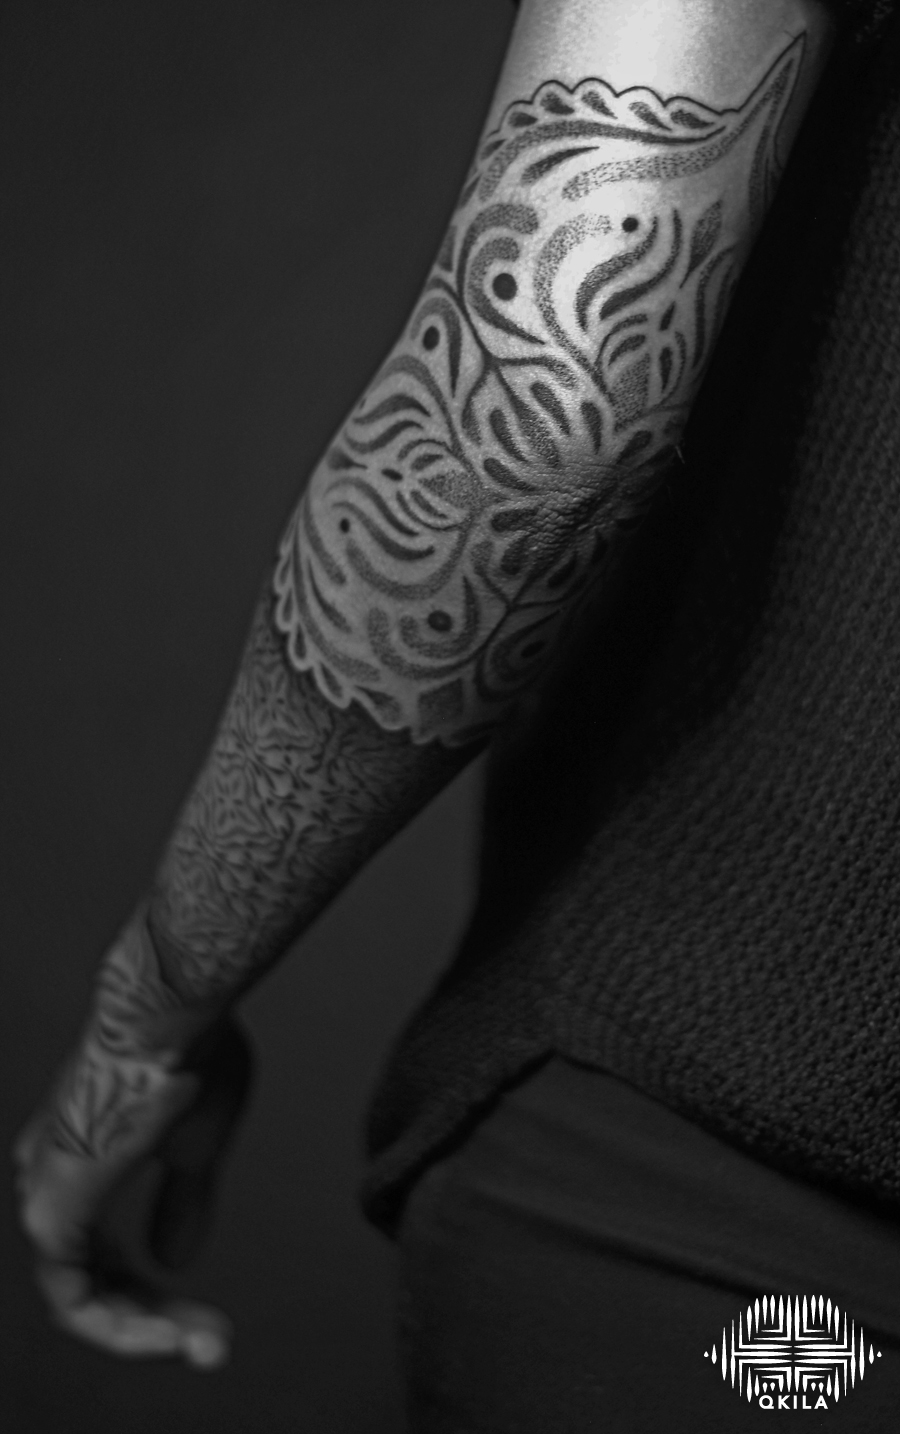 sleeve  tattoo,black on black,patterns tattoo,op art, sleeves tattoo, dotwork tattoo, qkila,geometric tattoo, ethnique tattoo, les tatoués anonymes, nimes